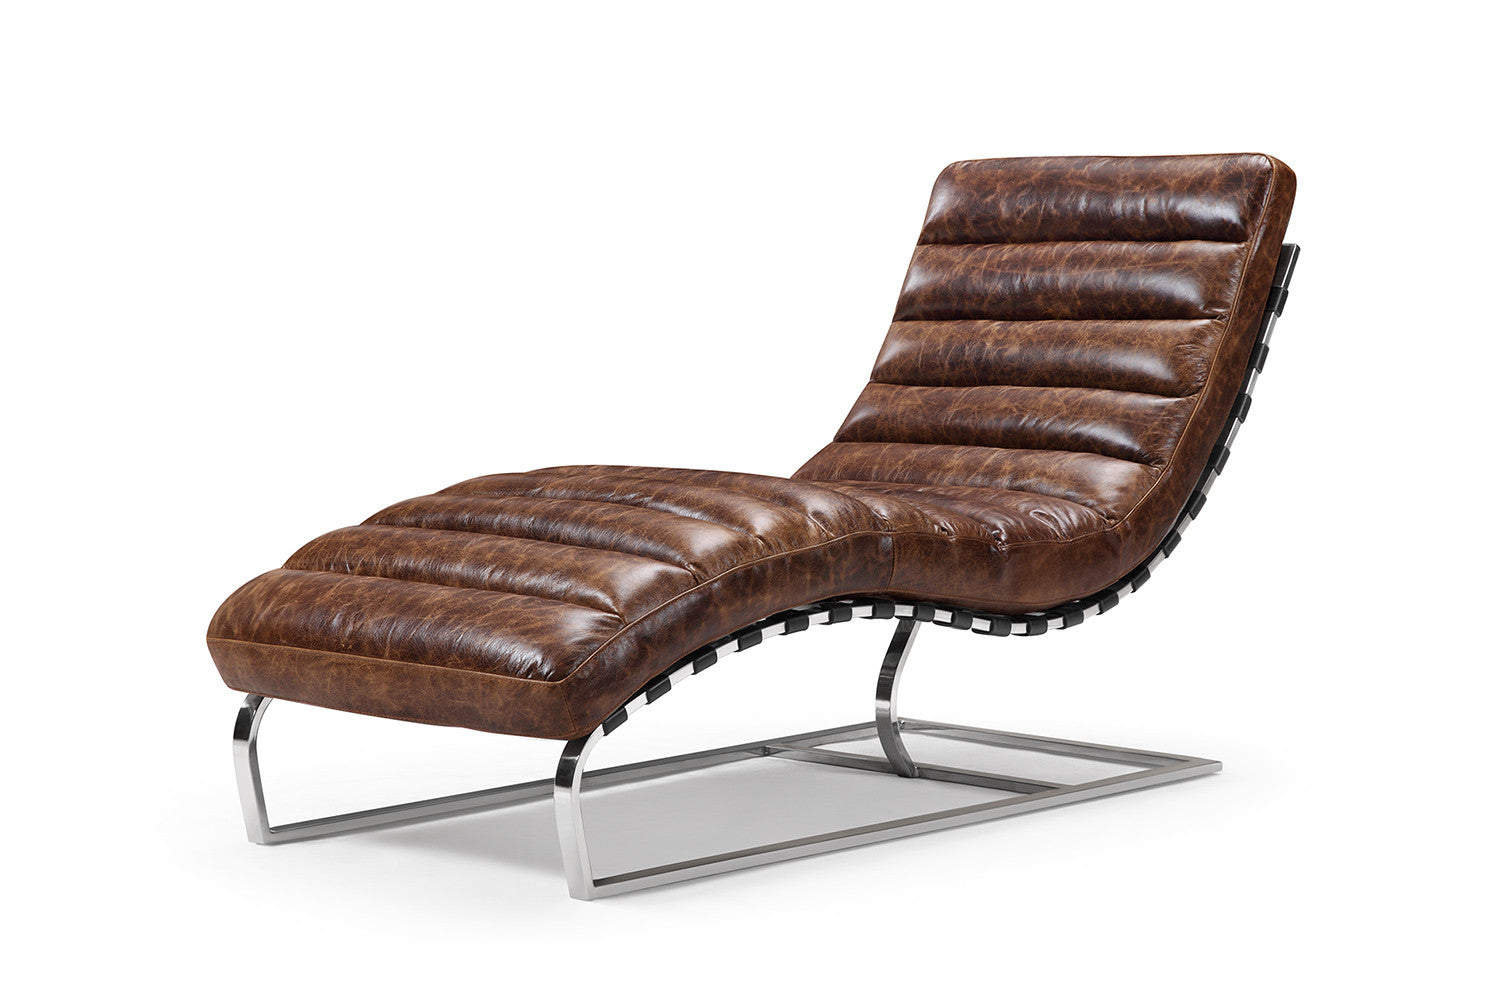 The leather chaise lounge rose and moore for Chaises maisons du monde